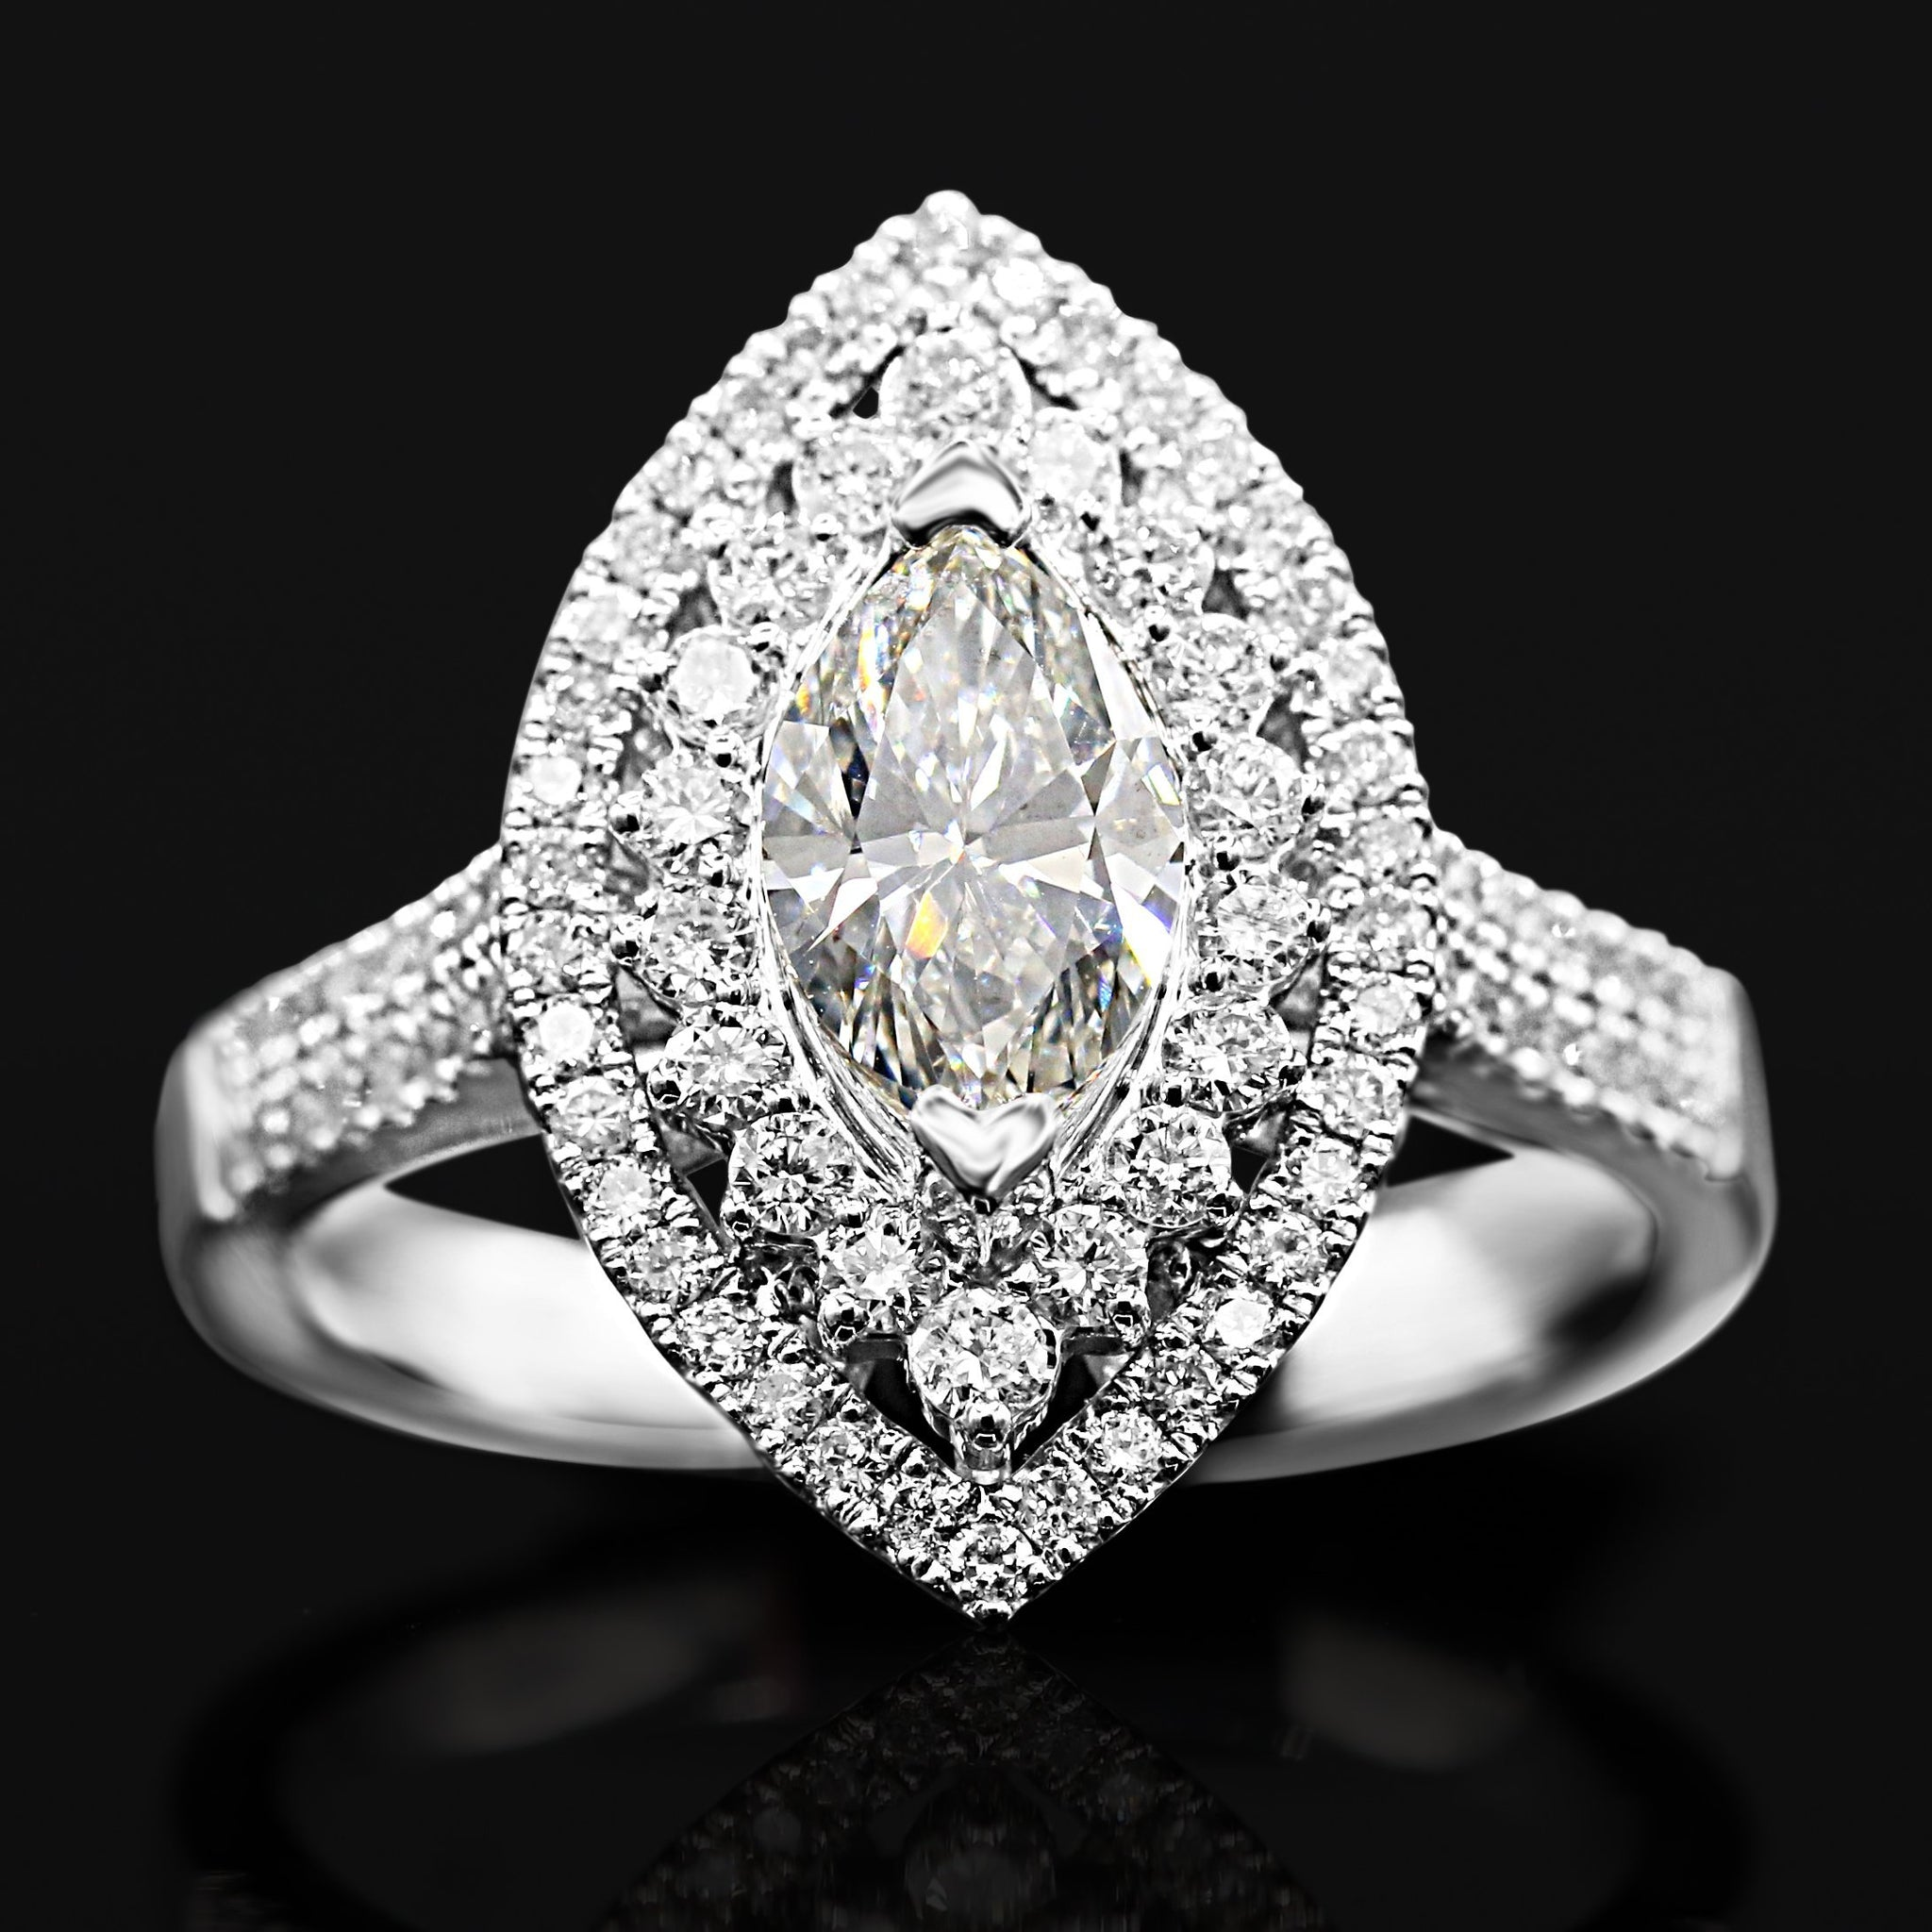 Mesmerizing 14K White Gold Marquise Diamond Ring (1.66ct/0.92ct Carat Diamond Weight)